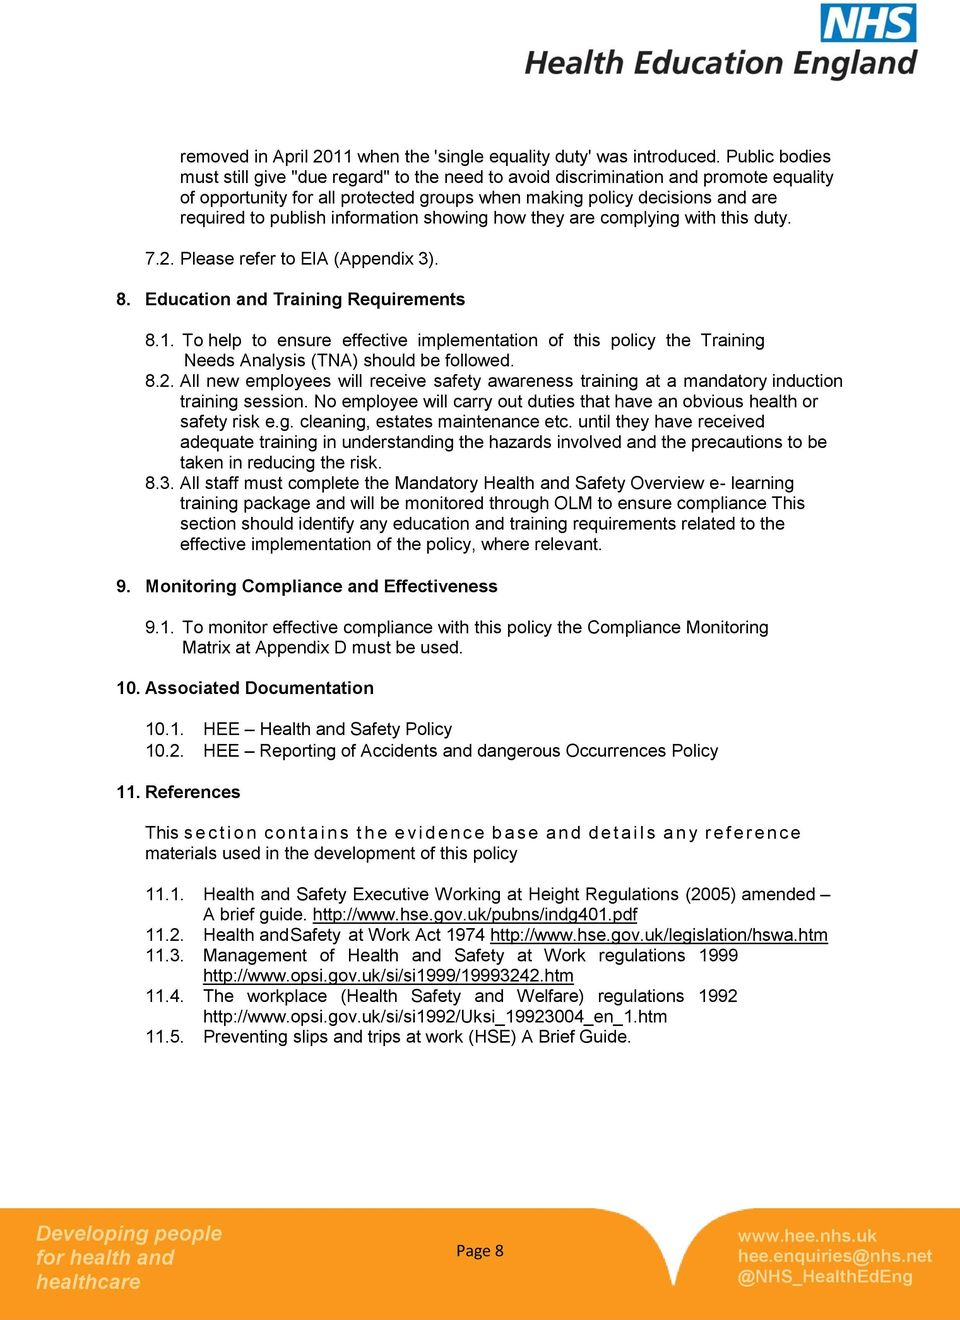 information showing how they are complying with this duty. 7.2. Please refer to EIA (Appendix 3). 8. Education and Training Requirements 8.1.